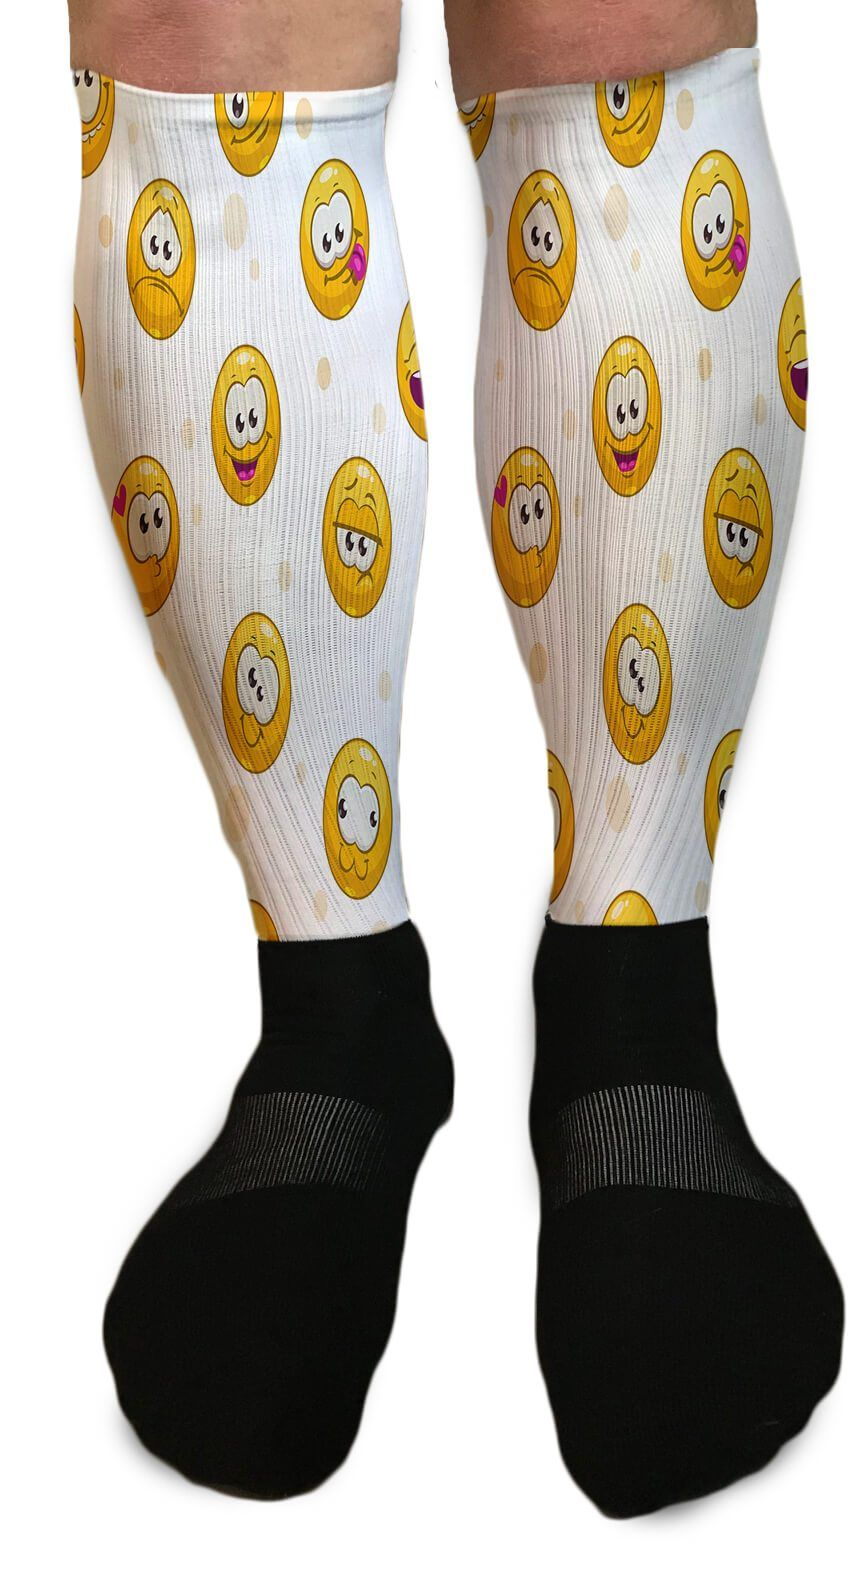 JUST BE HAPPY SMILEY FACE ATHLETIC OR COMPRESSION SOCKS